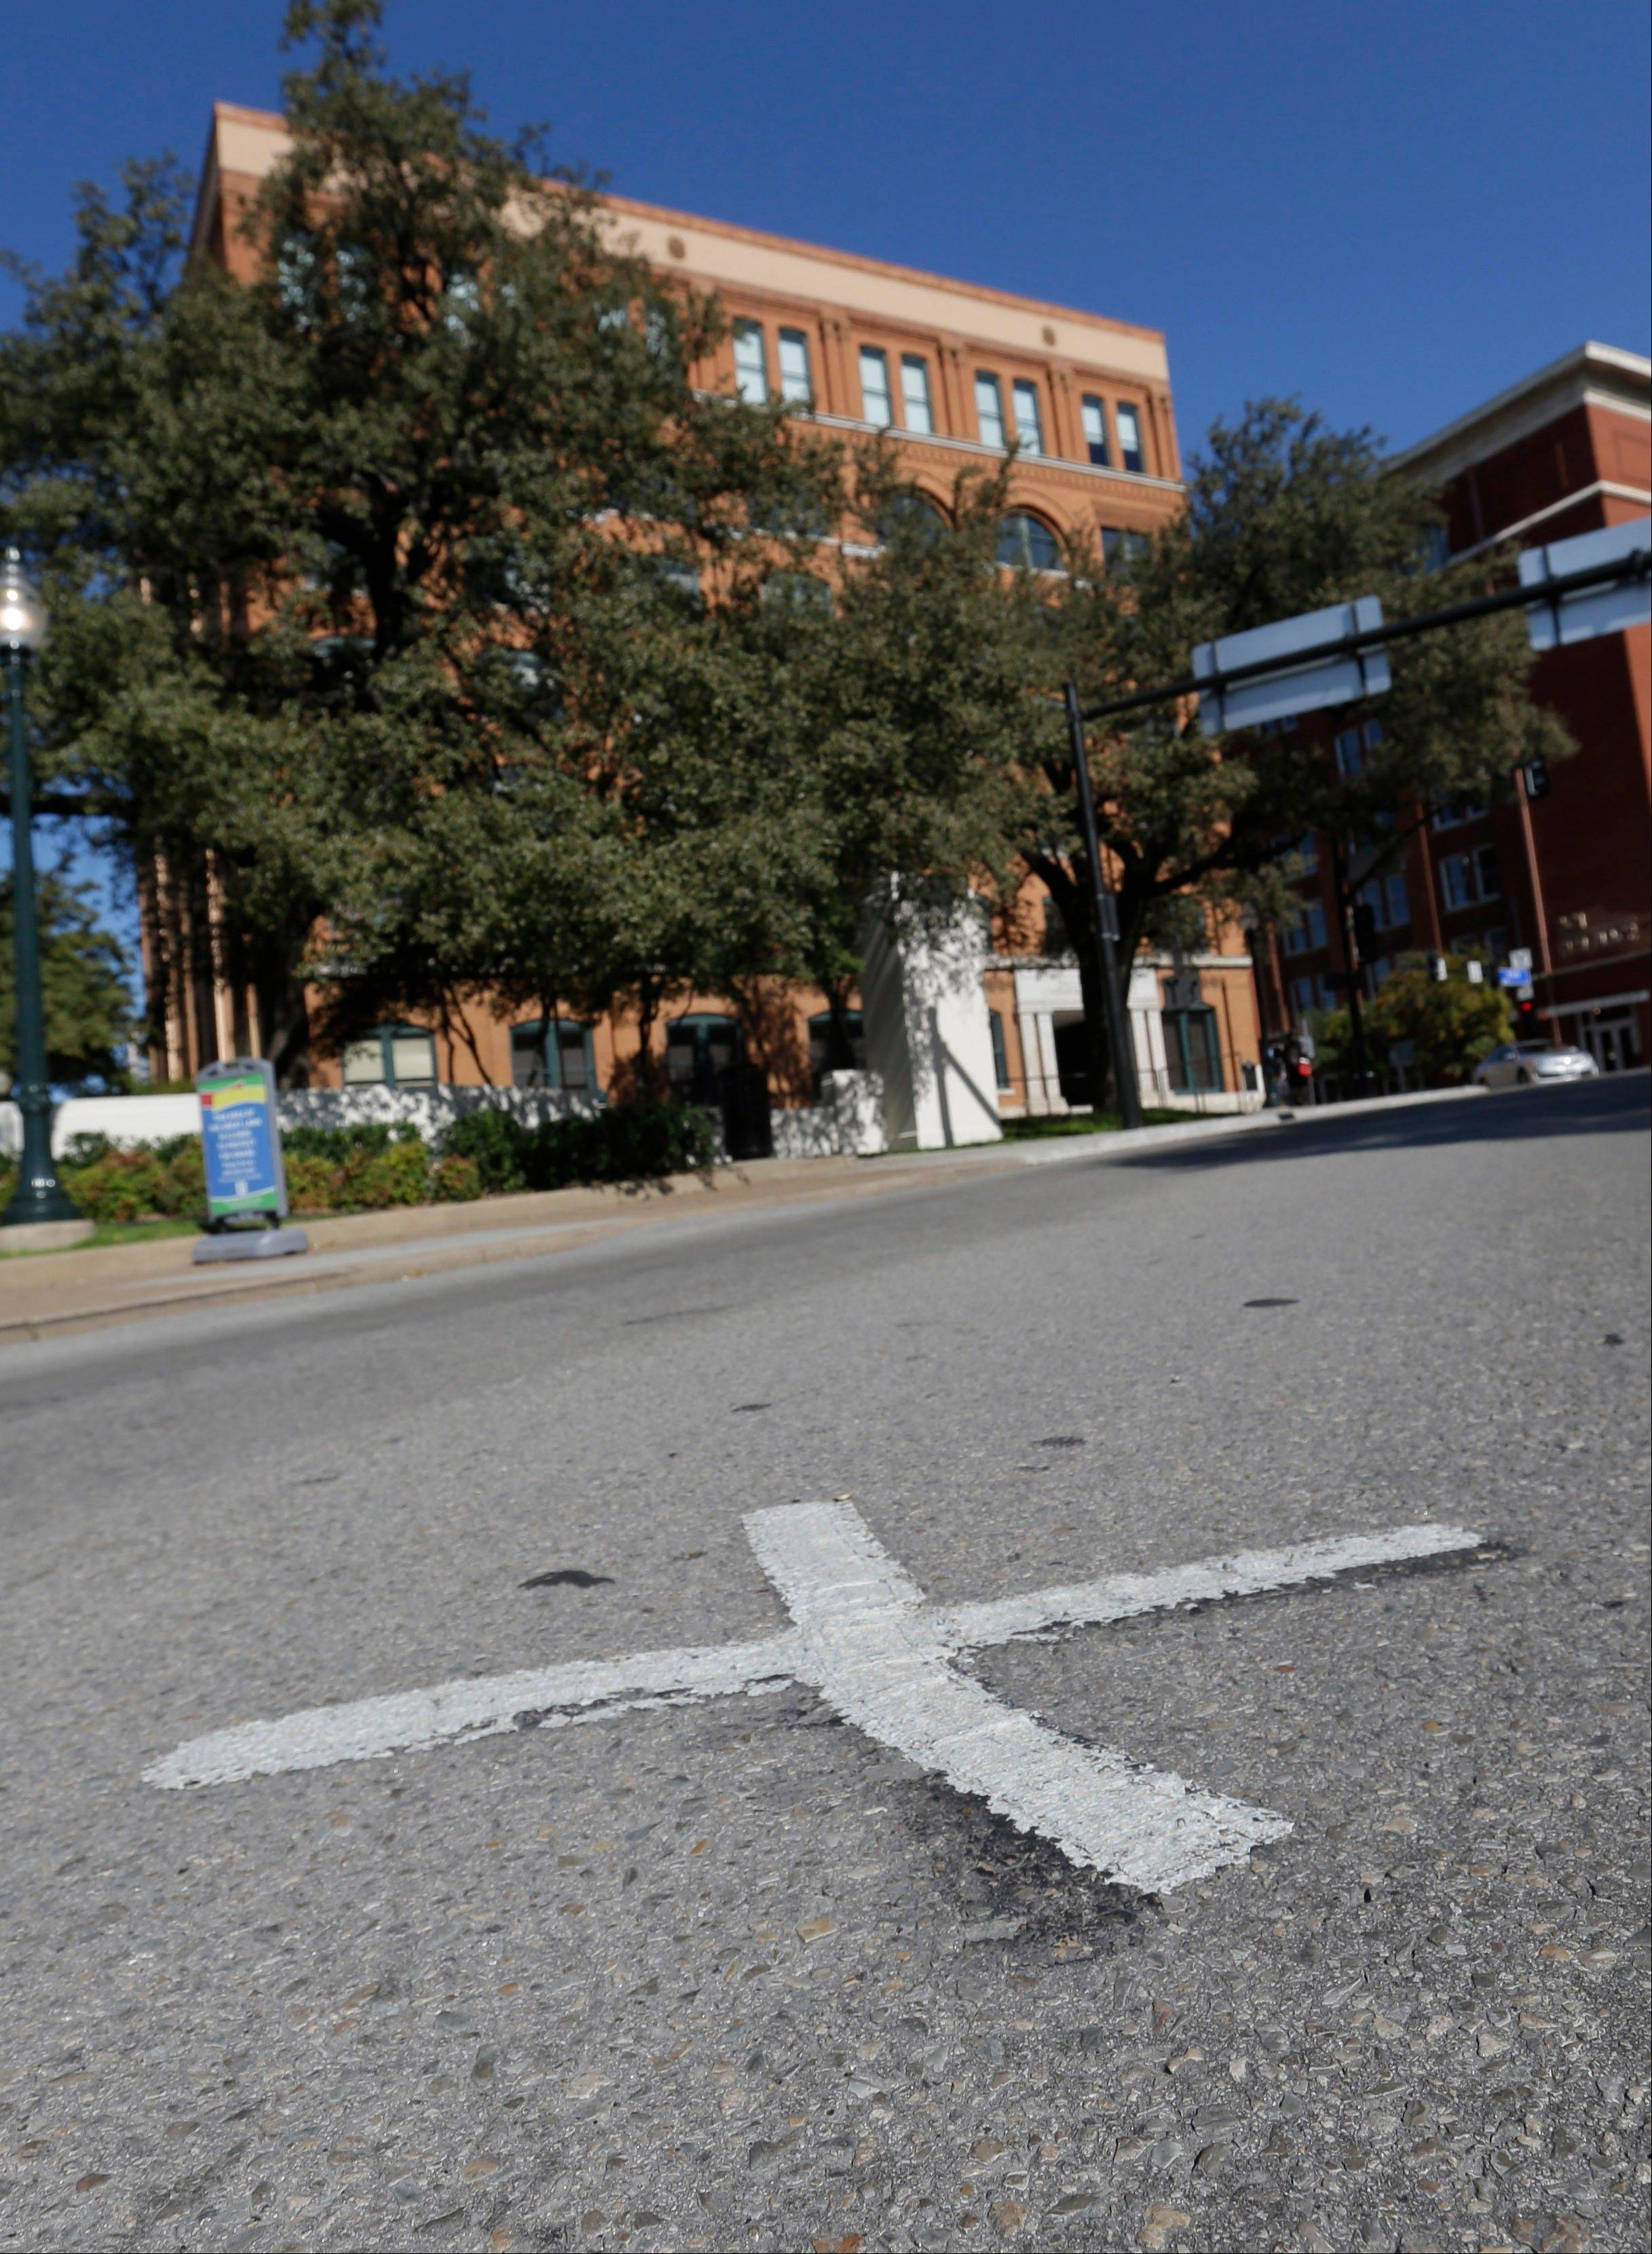 An X marks the spot on Elm Street where the first bullet hit President John F. Kennedy on Nov. 22, 1963, near the former Texas School Book Depository, now known as the Sixth Floor Museum, background, on Dealey Plaza in Dallas.